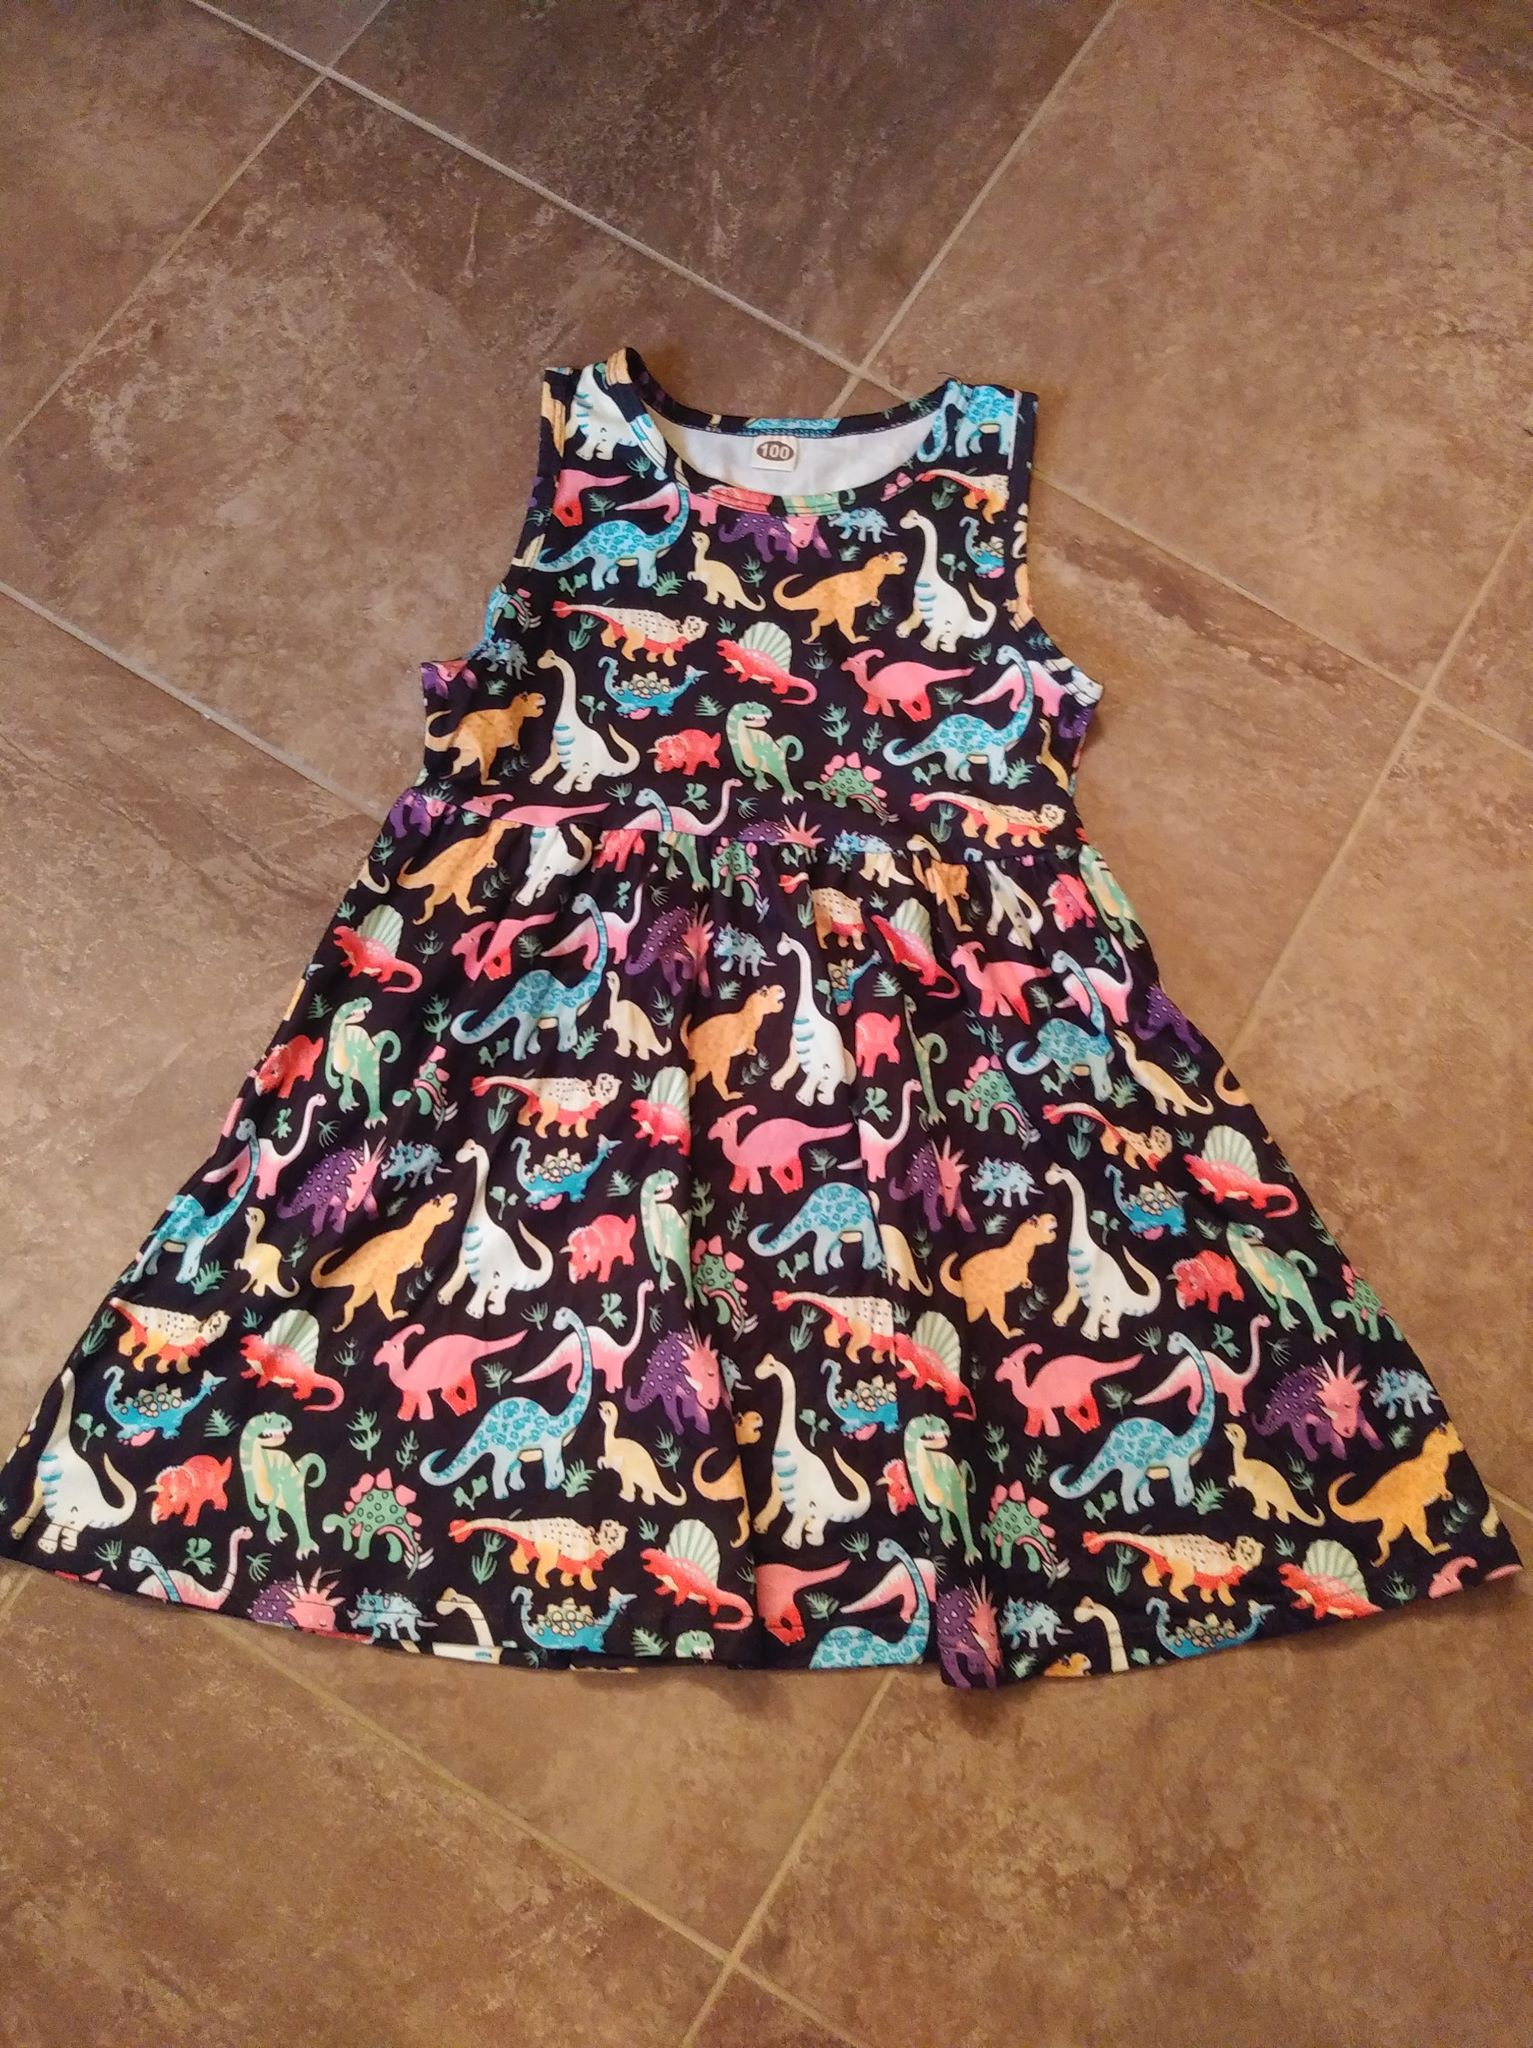 Cute Dino Dress For Your Little Diva